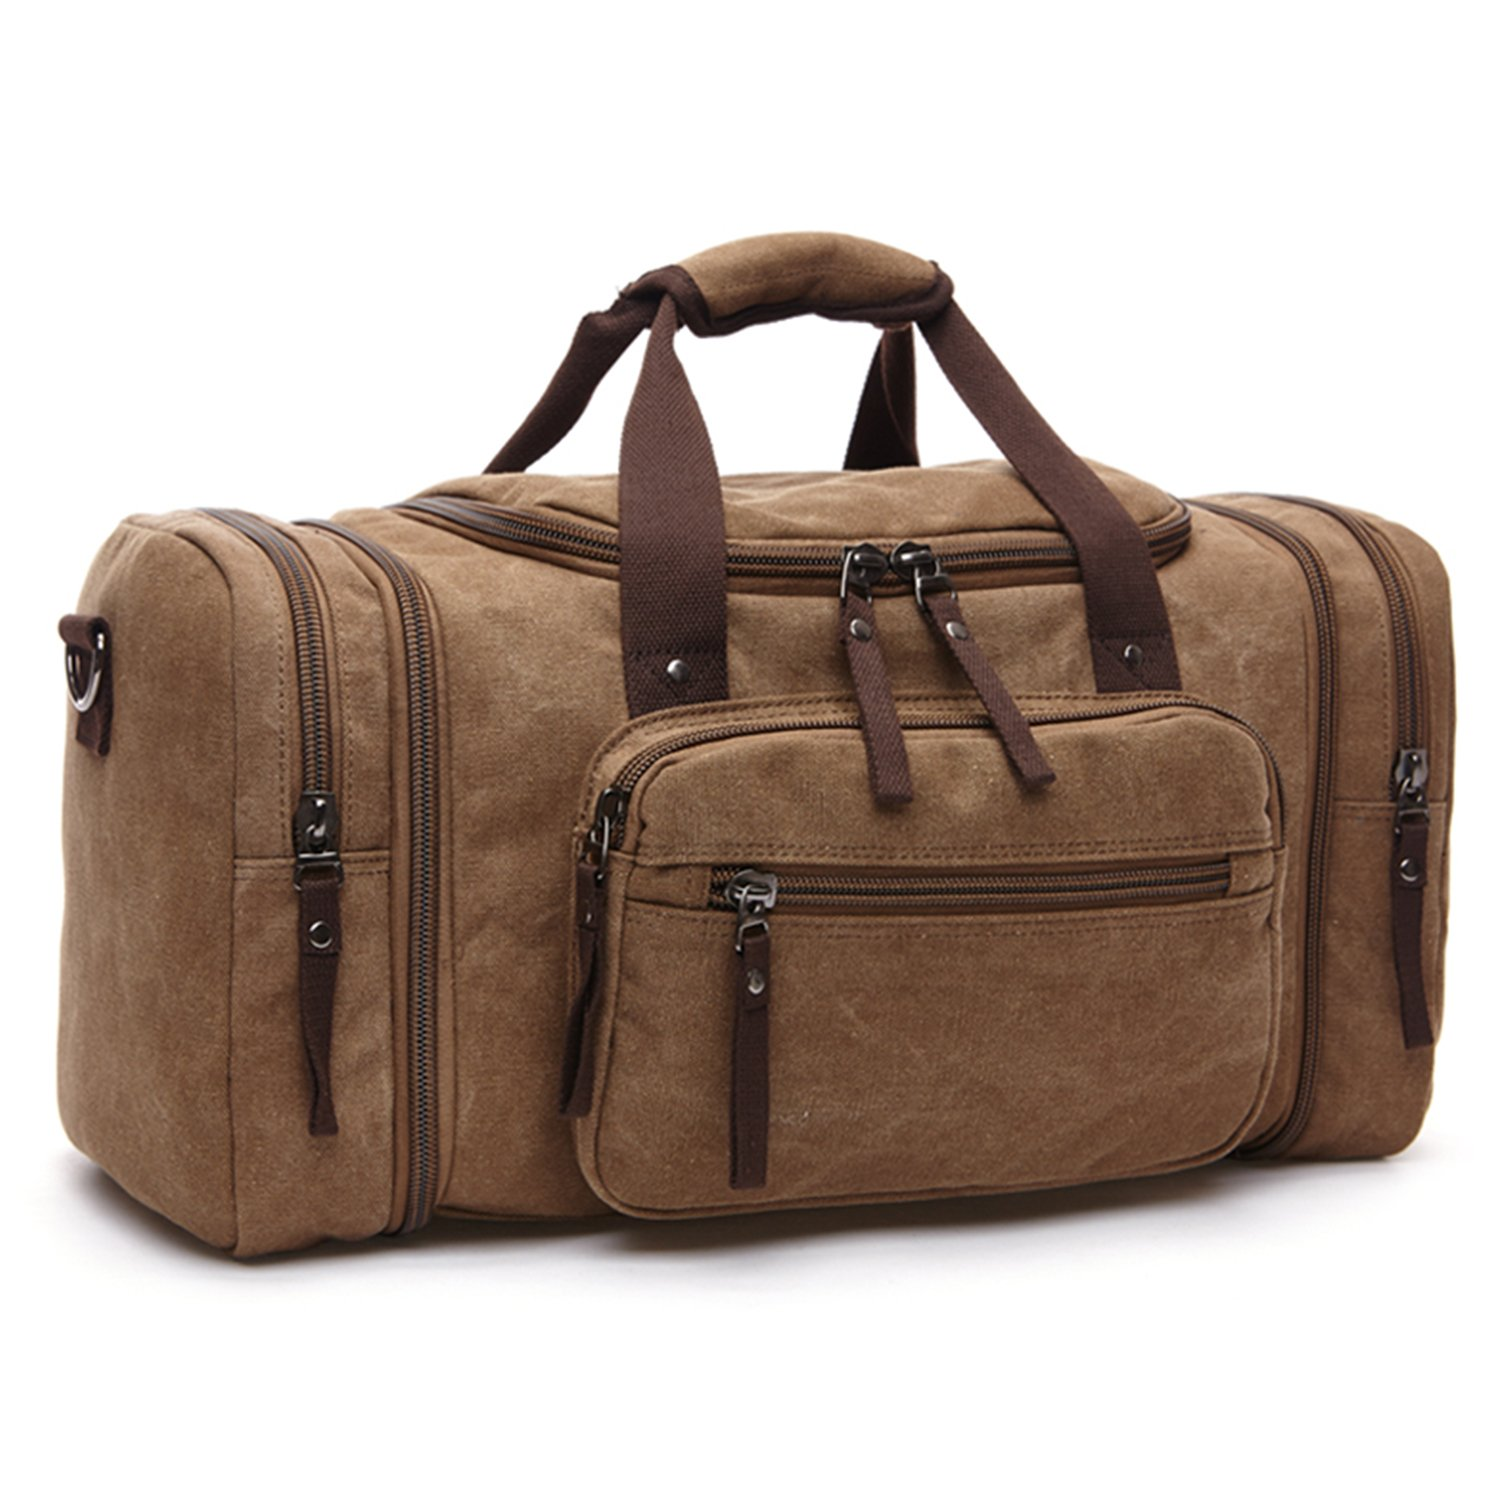 Lanivas 20.8'' Large Canvas Travel Tote Duffle Bag Luggage Weekender Travel Accessory Coffee